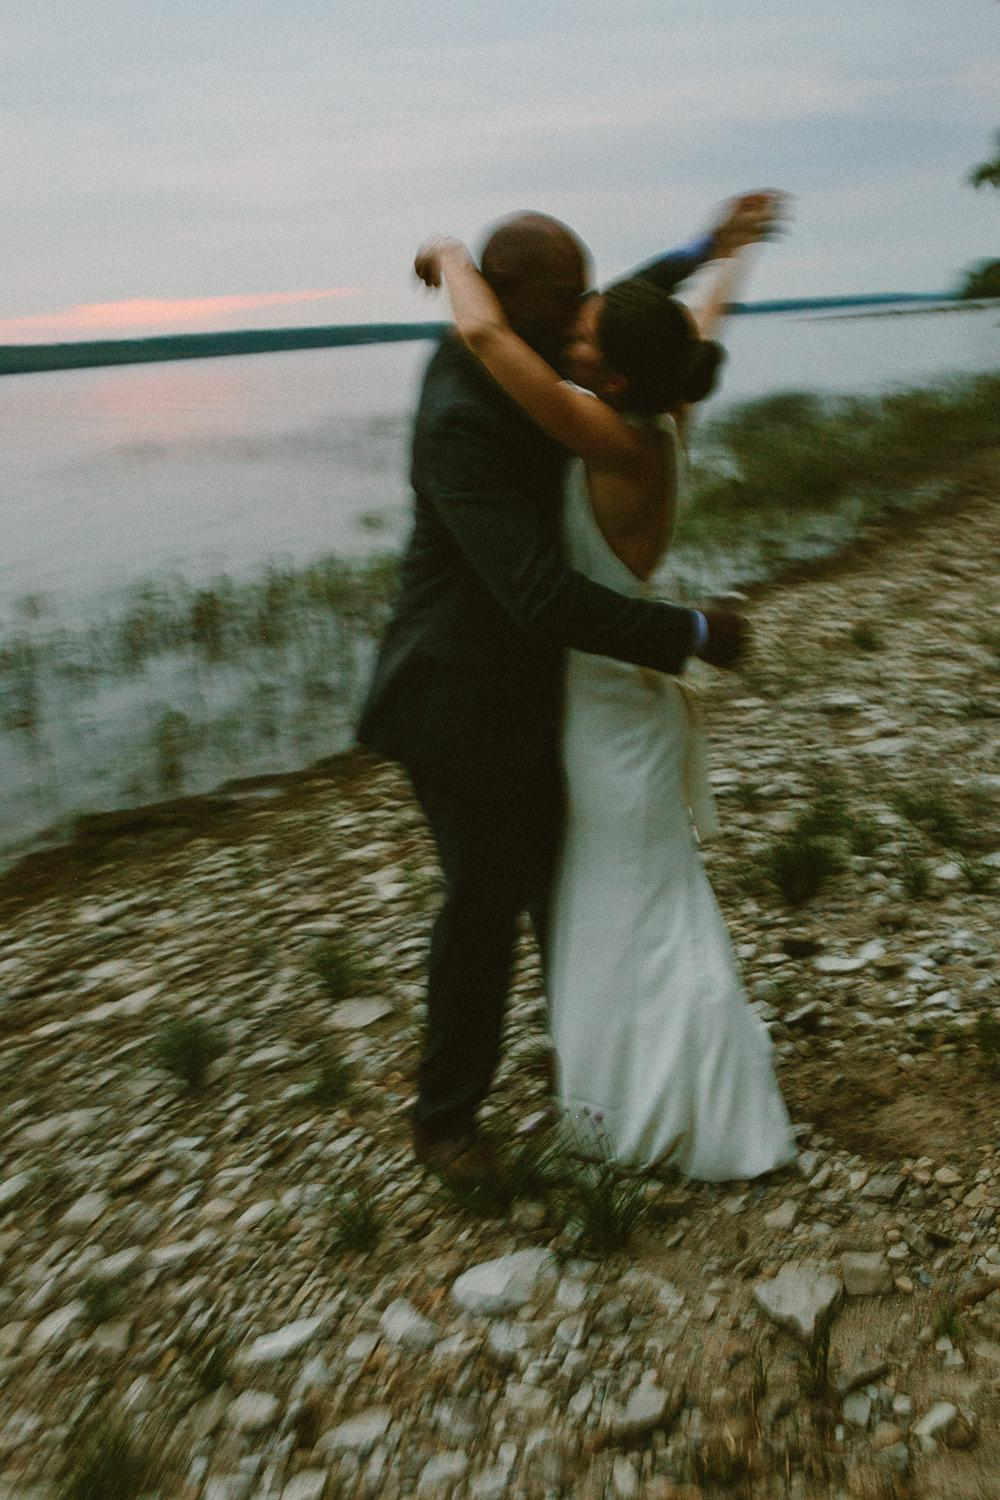 ottawa river small intimate wedding-265.jpg